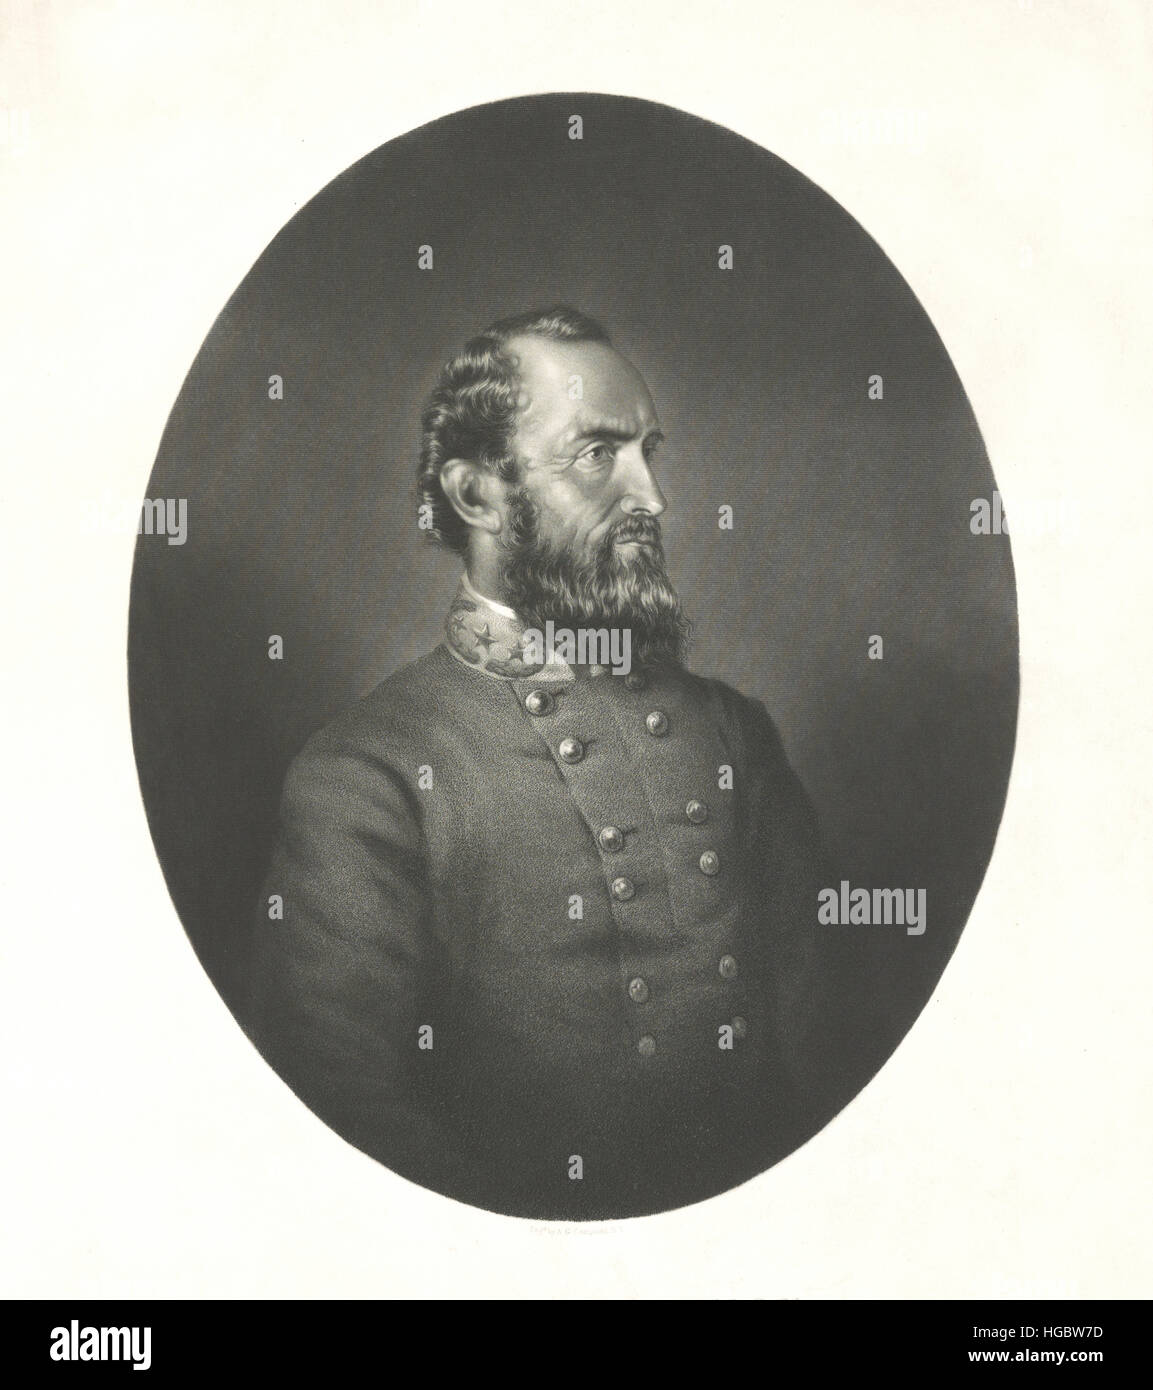 Portrait of Thomas Stonewall Jackson of the Confederate States Army. - Stock Image